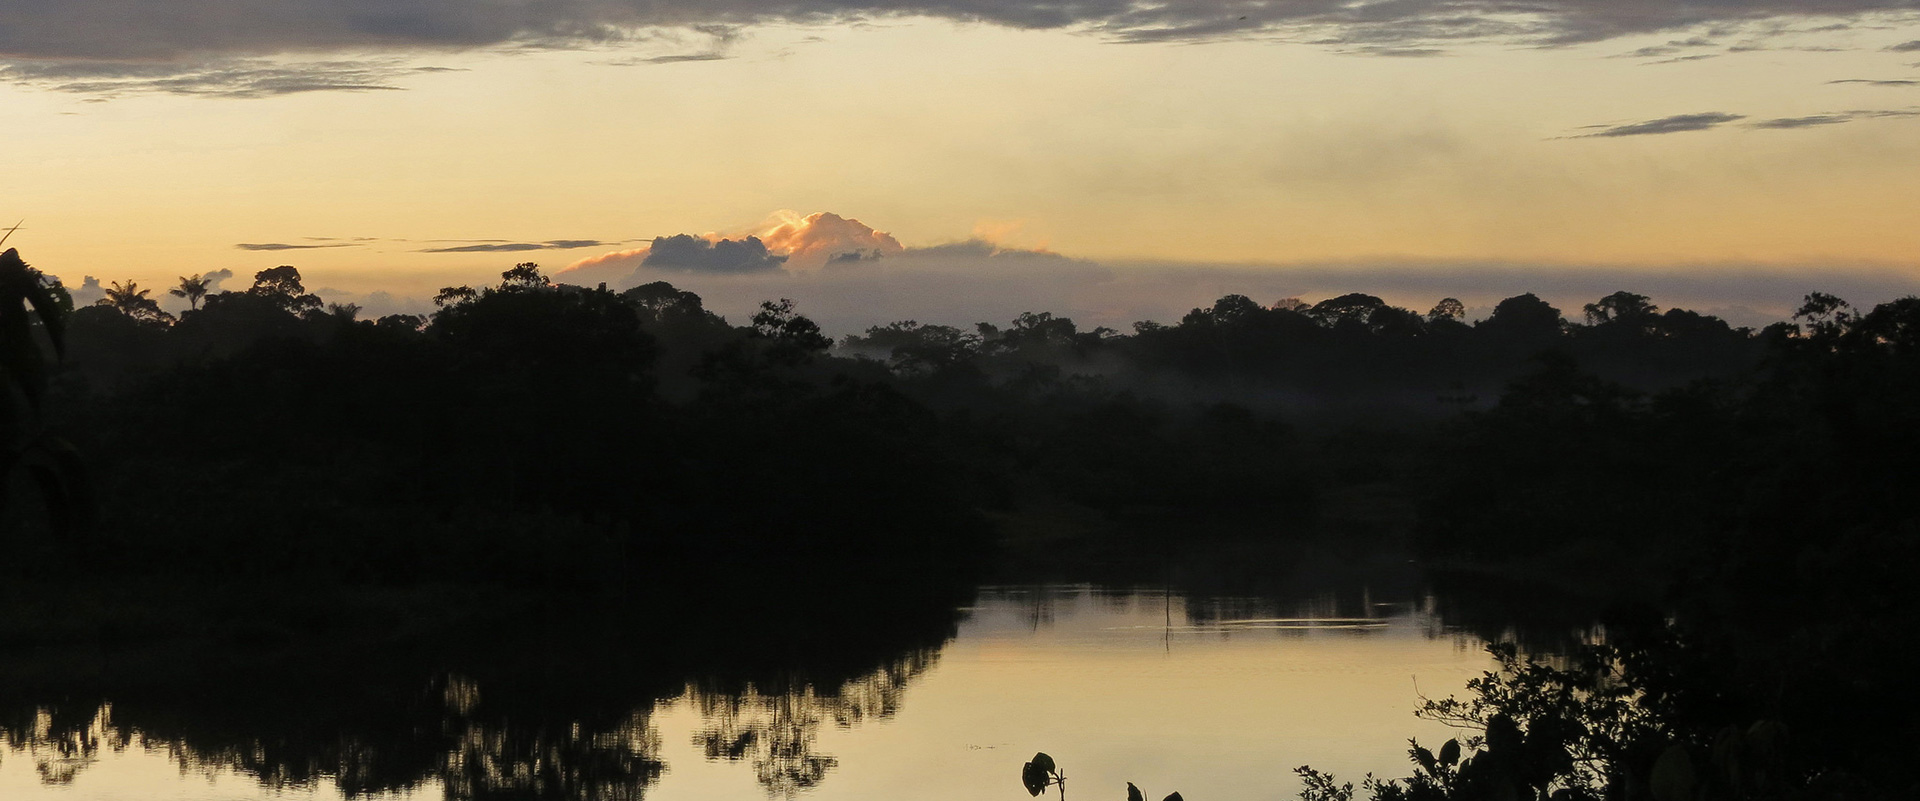 Cuyabeno Amazon Sani Lodge Sunset